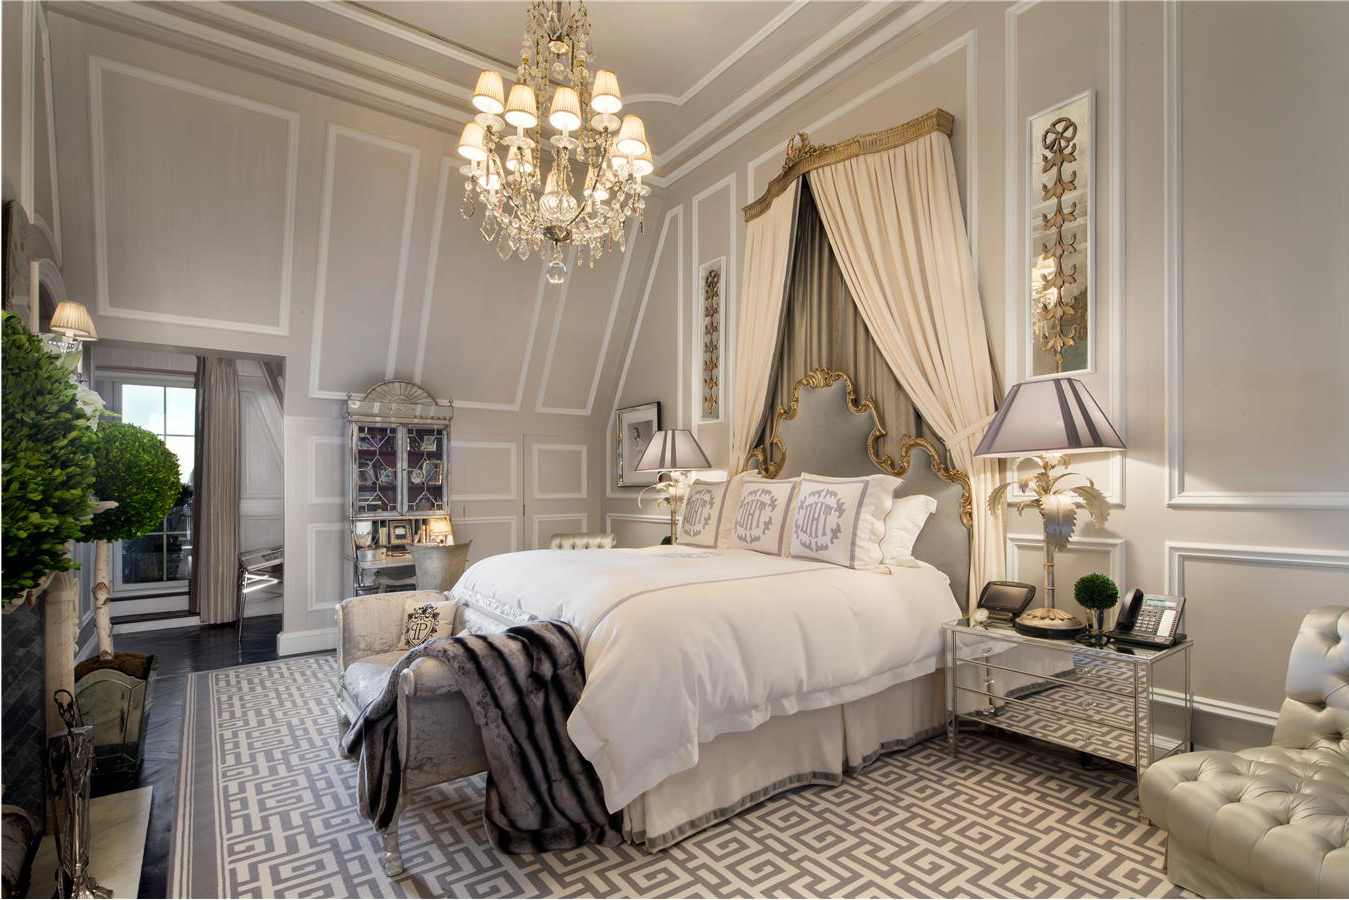 The master bedroom is elegantly appointed and features a fireplace.